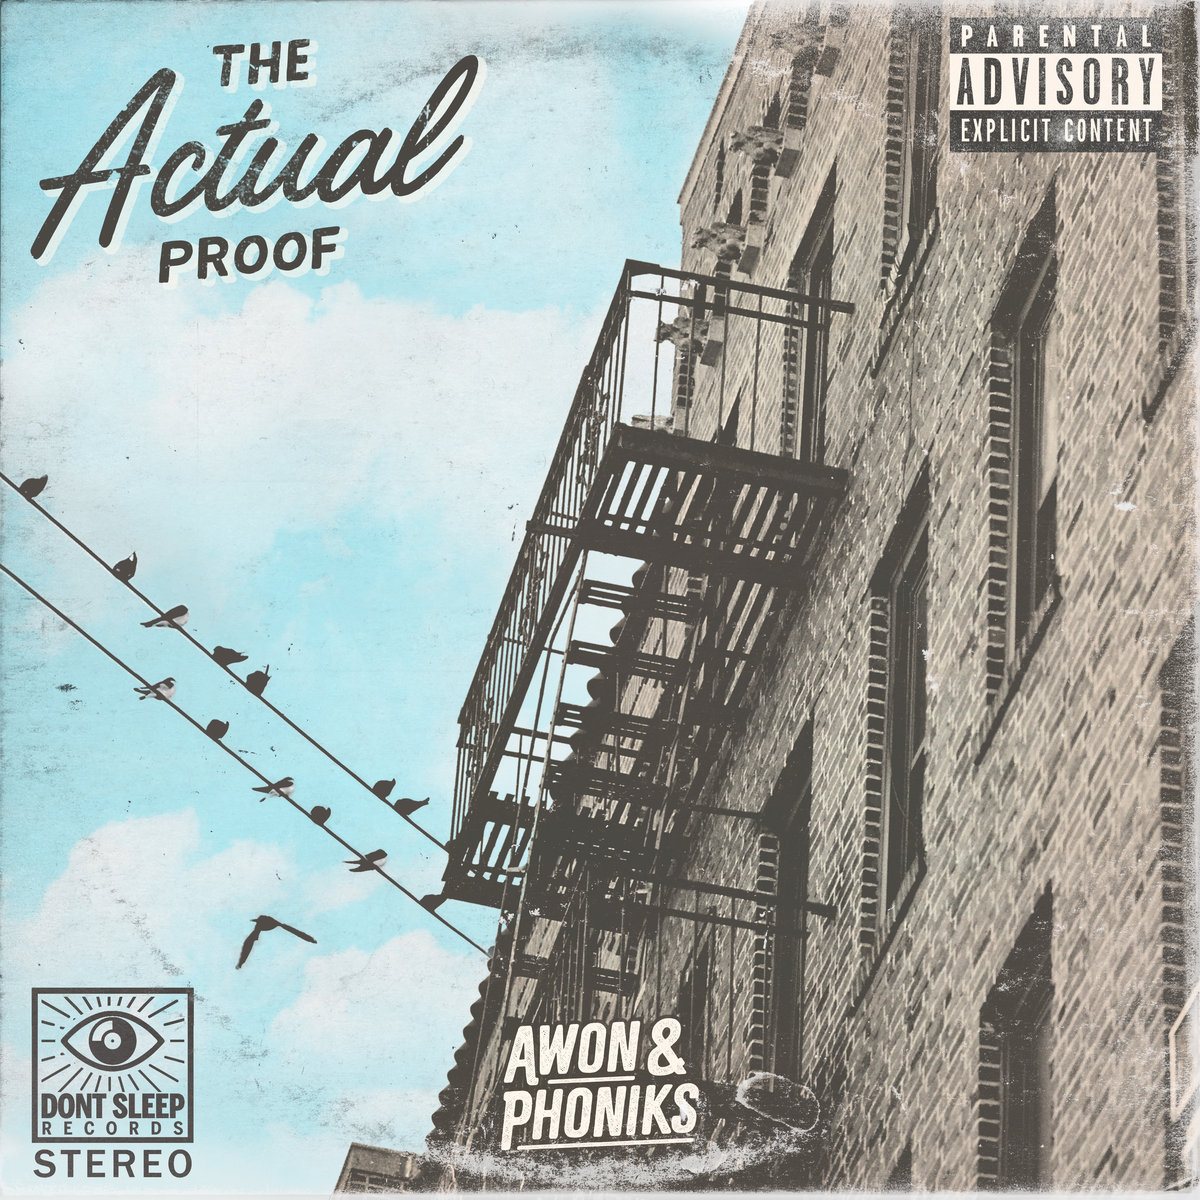 The Actual Proof von Awon & Phoniks | Unser Musiktipp als Full Album Stream